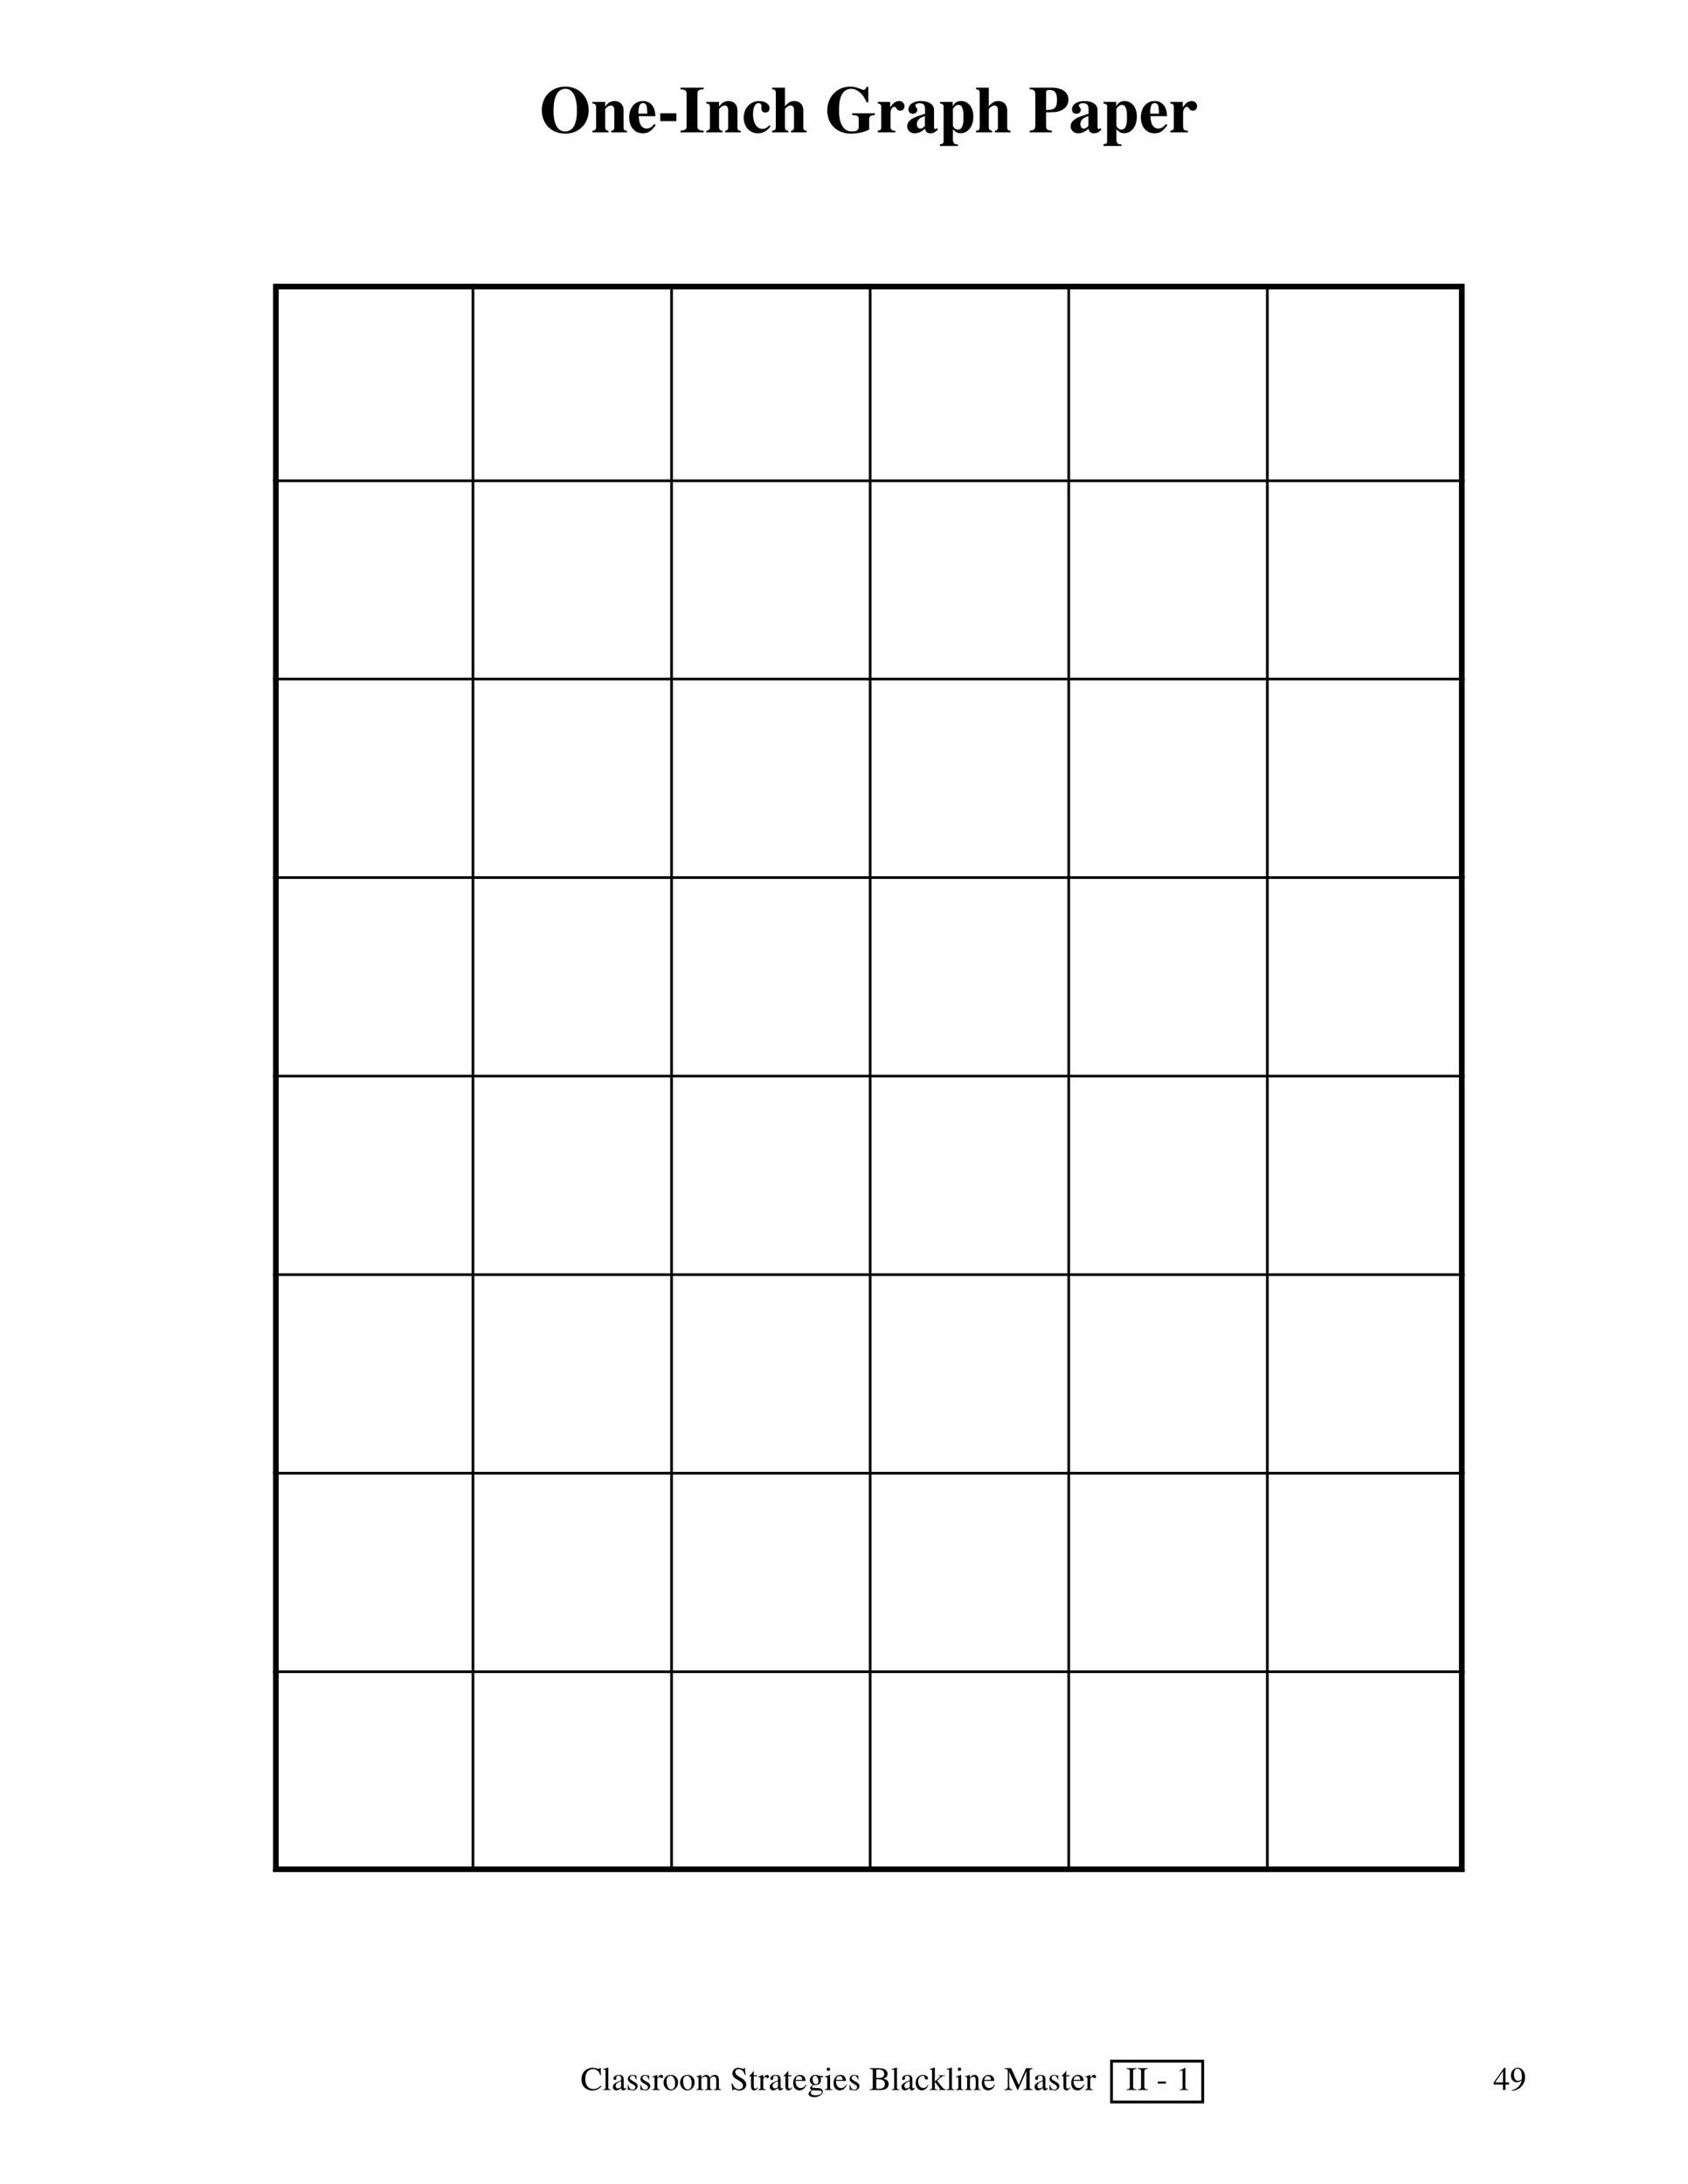 Drawing Lines In Cm And Mm Worksheet : Free printable graph paper templates word pdf